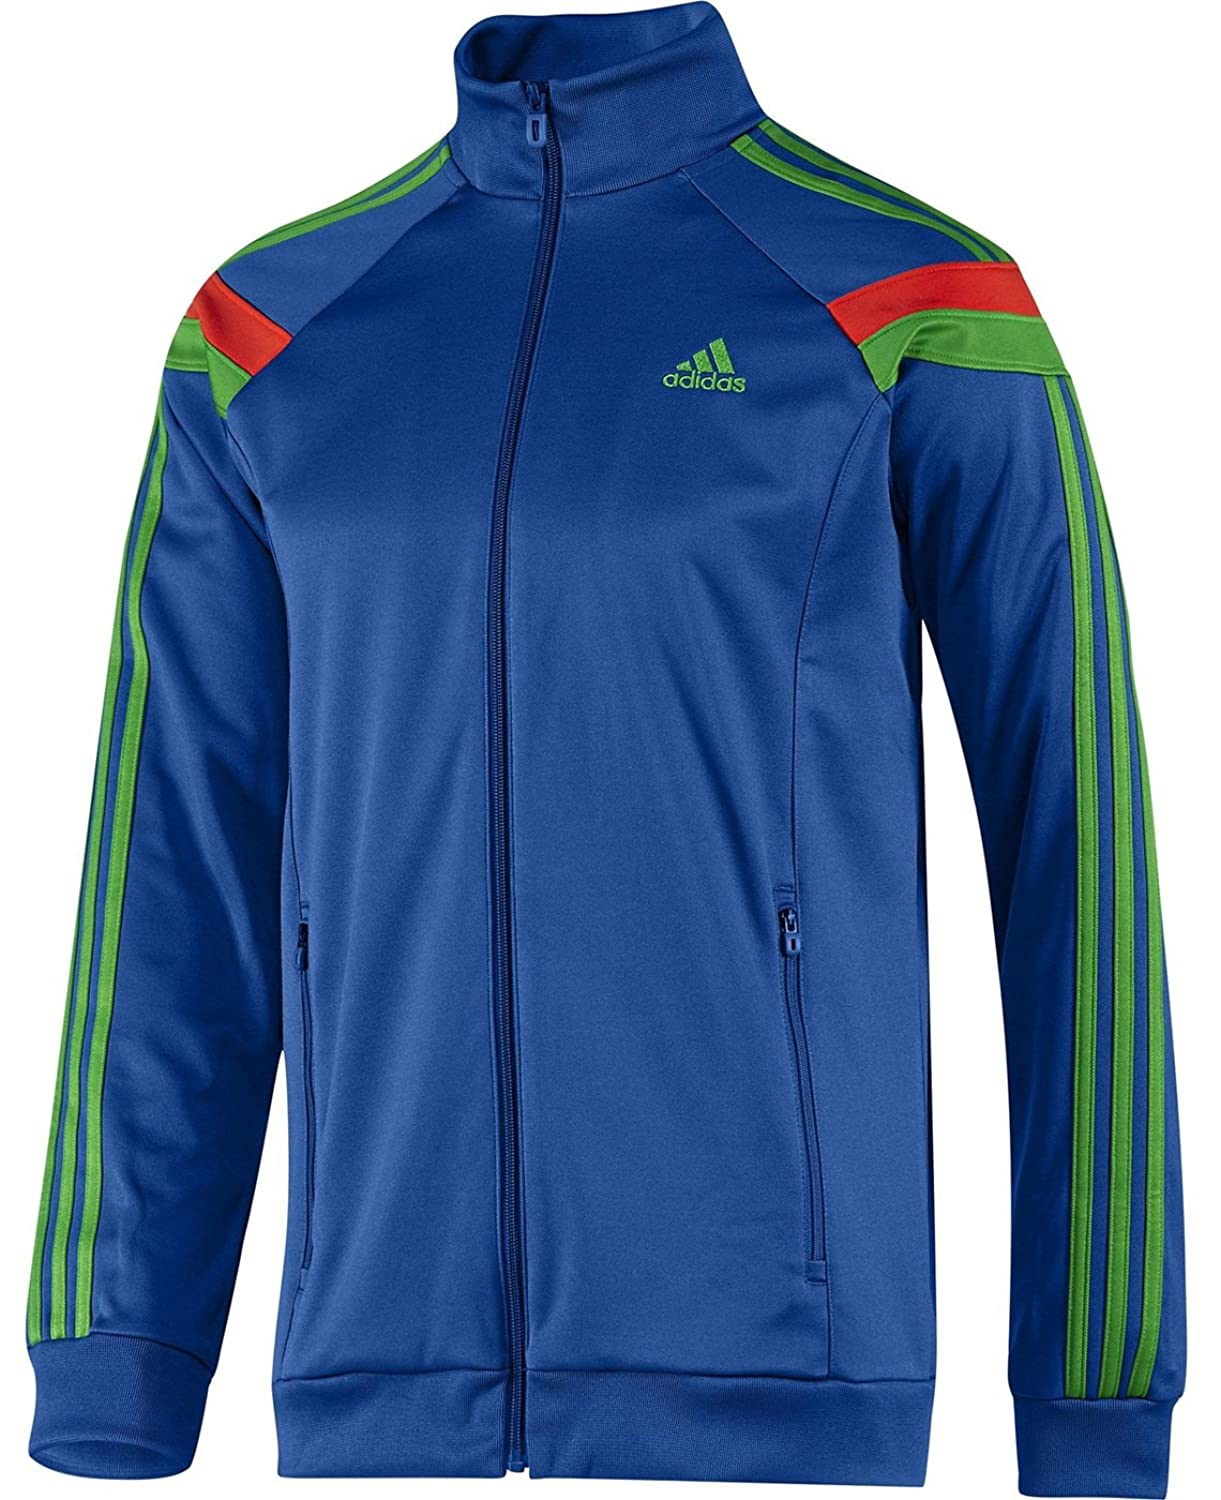 Adidas Mens SE Anthem F50619 Poly Tracktop Training Jacket Retro Style Small,Medium,Large,XL